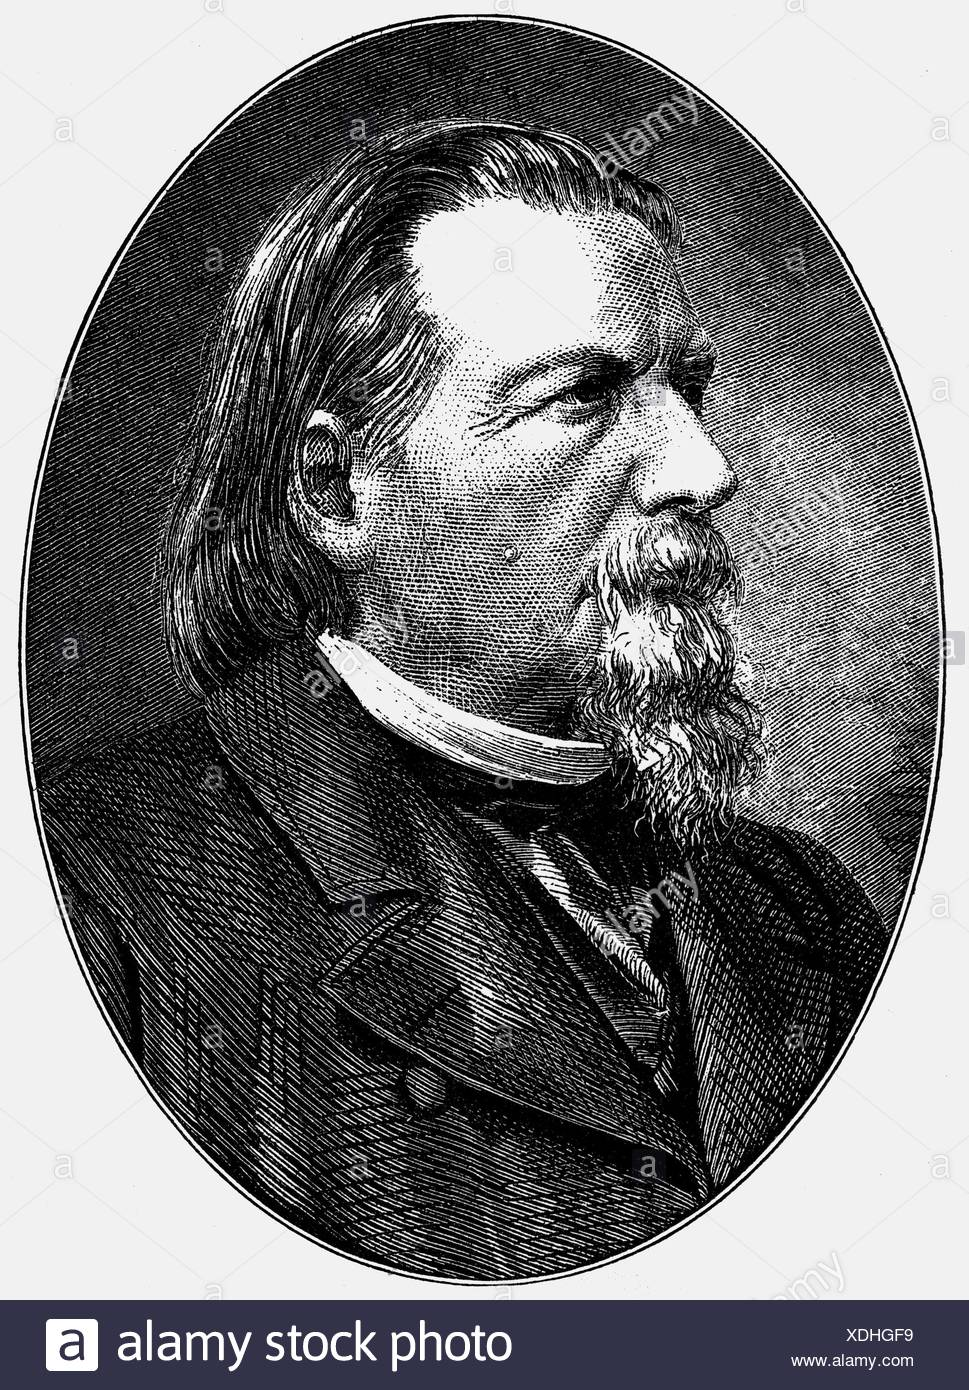 Gutzkow, Karl Ferdinand, 17.3.1811 - 16. 12.1878, German author / writer and journalist, portrait, wood engraving, 19th century, , Additional-Rights-Clearances-NA Stock Photo